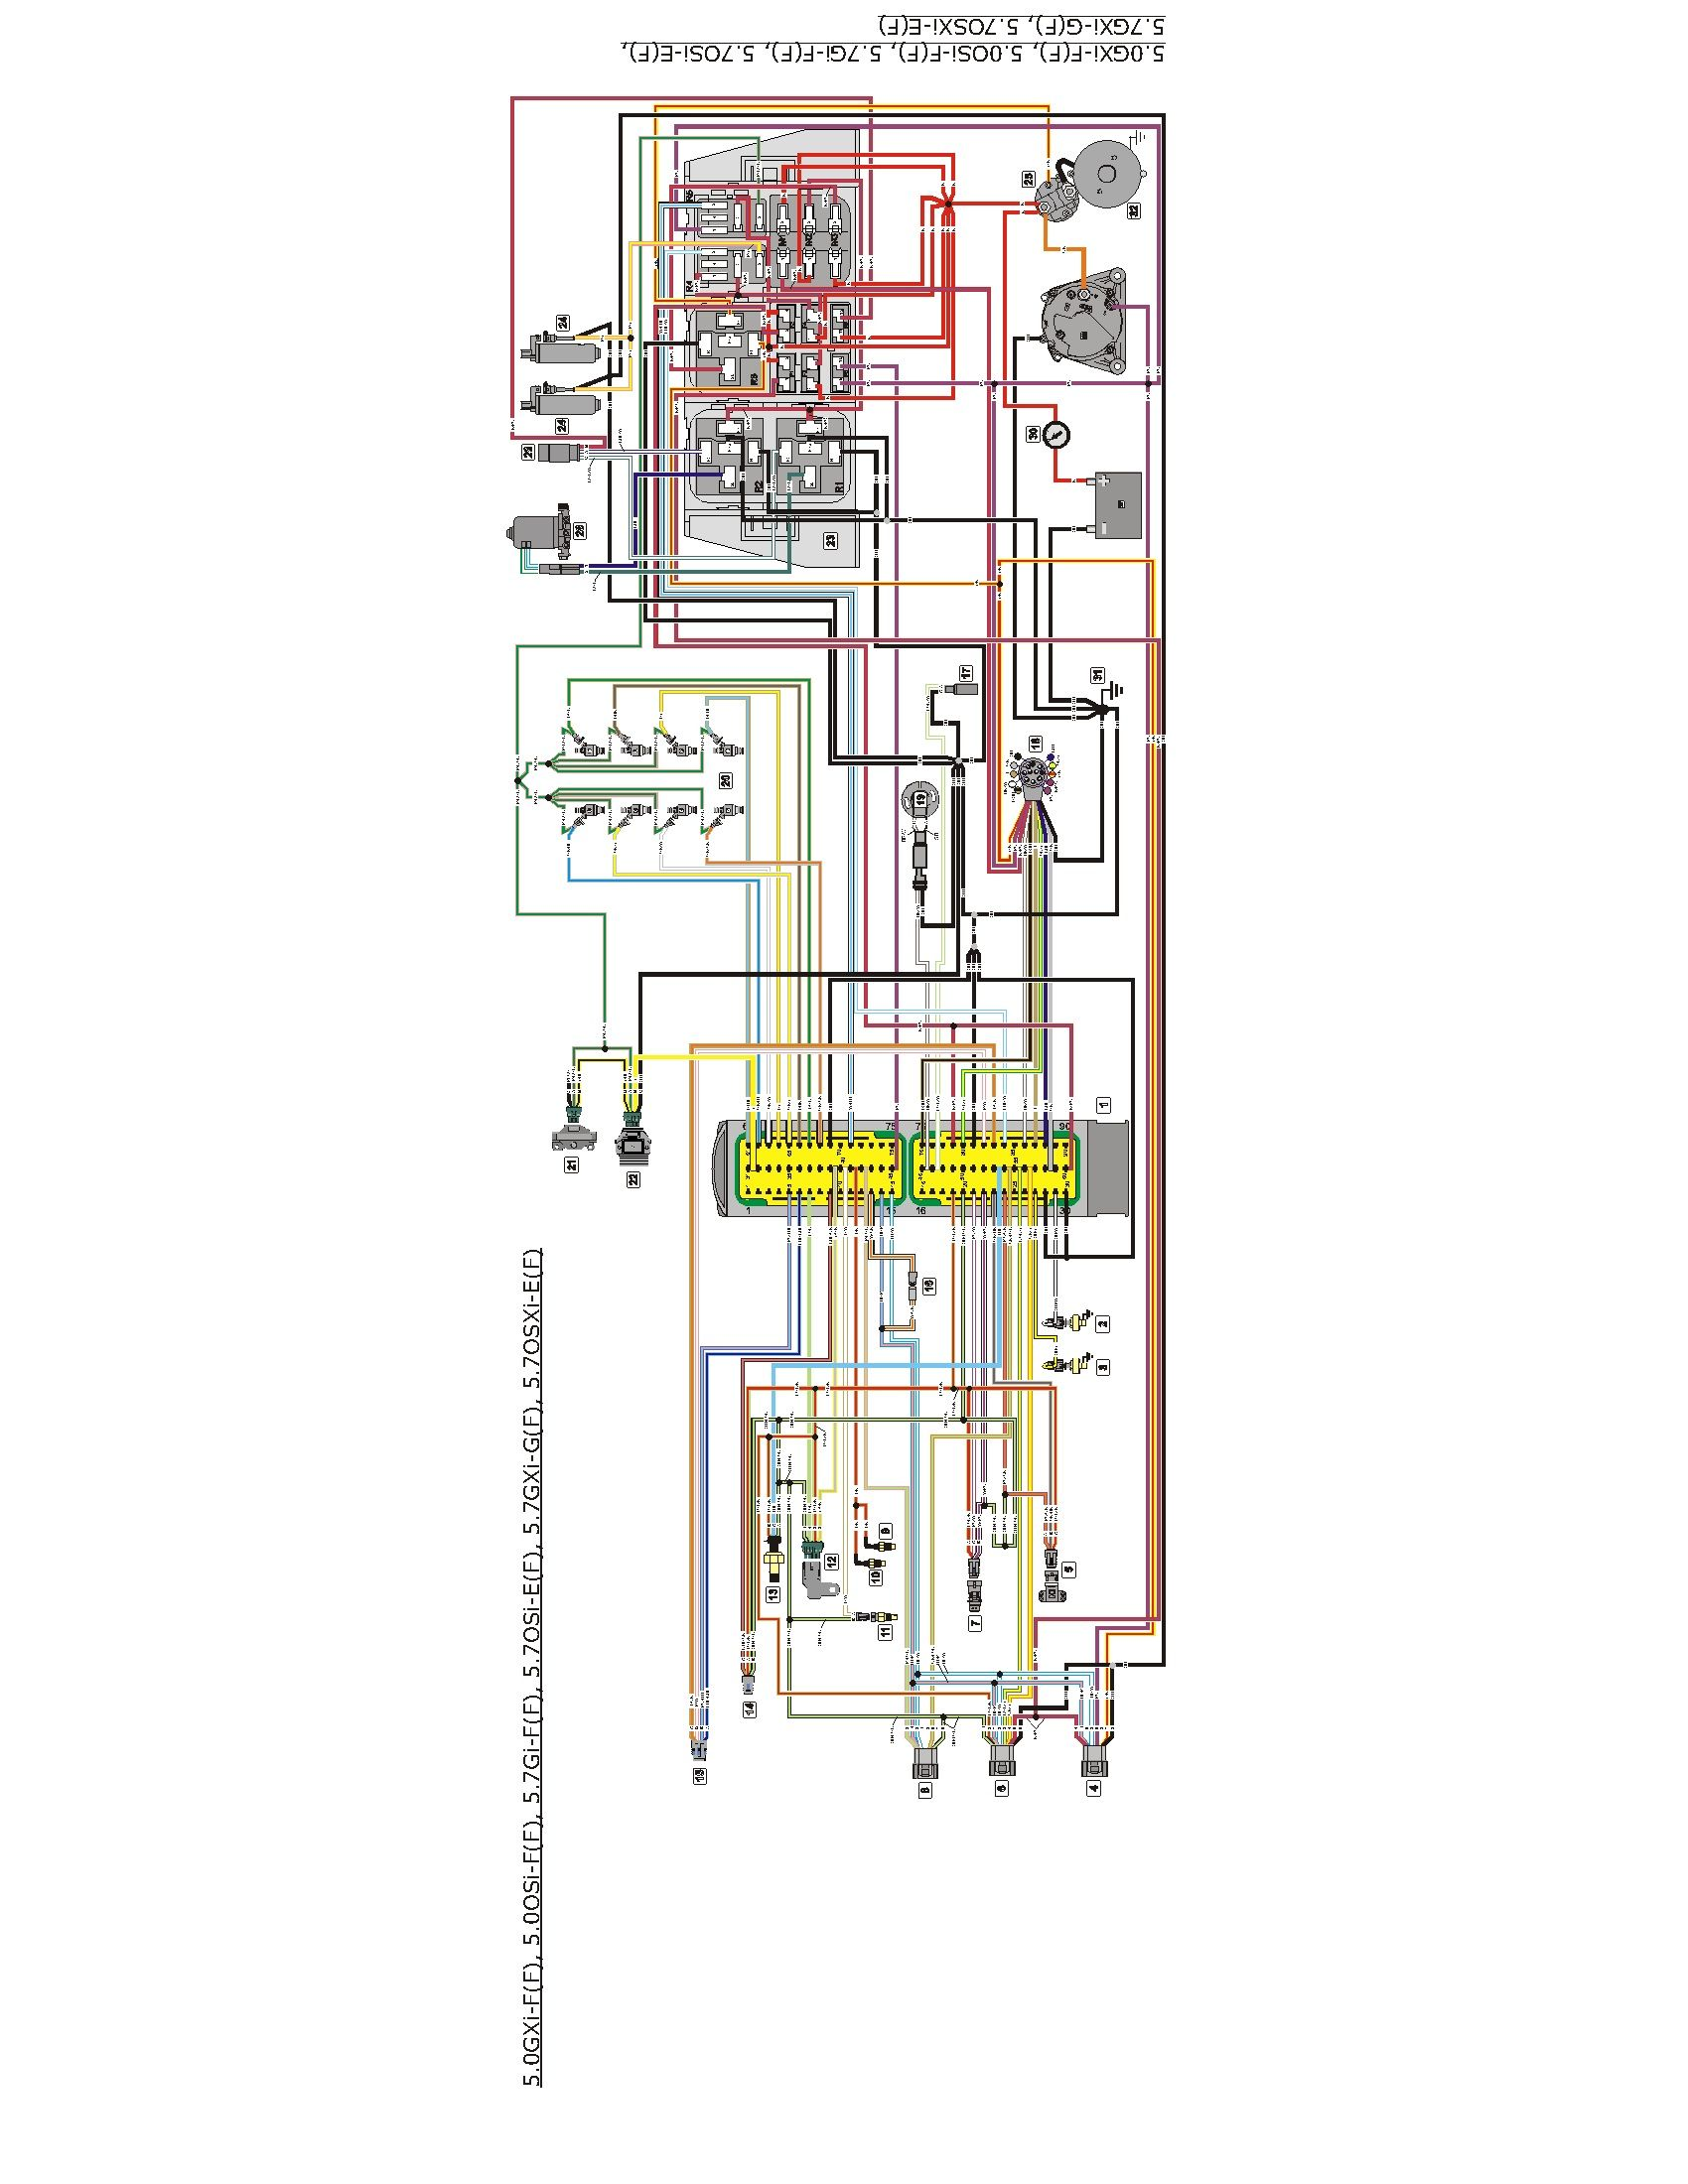 38e0106861e0fe47e508530985b32839 volvo penta 5 7 engine wiring diagram yate pinterest volvo volvo penta wiring harness diagram at webbmarketing.co